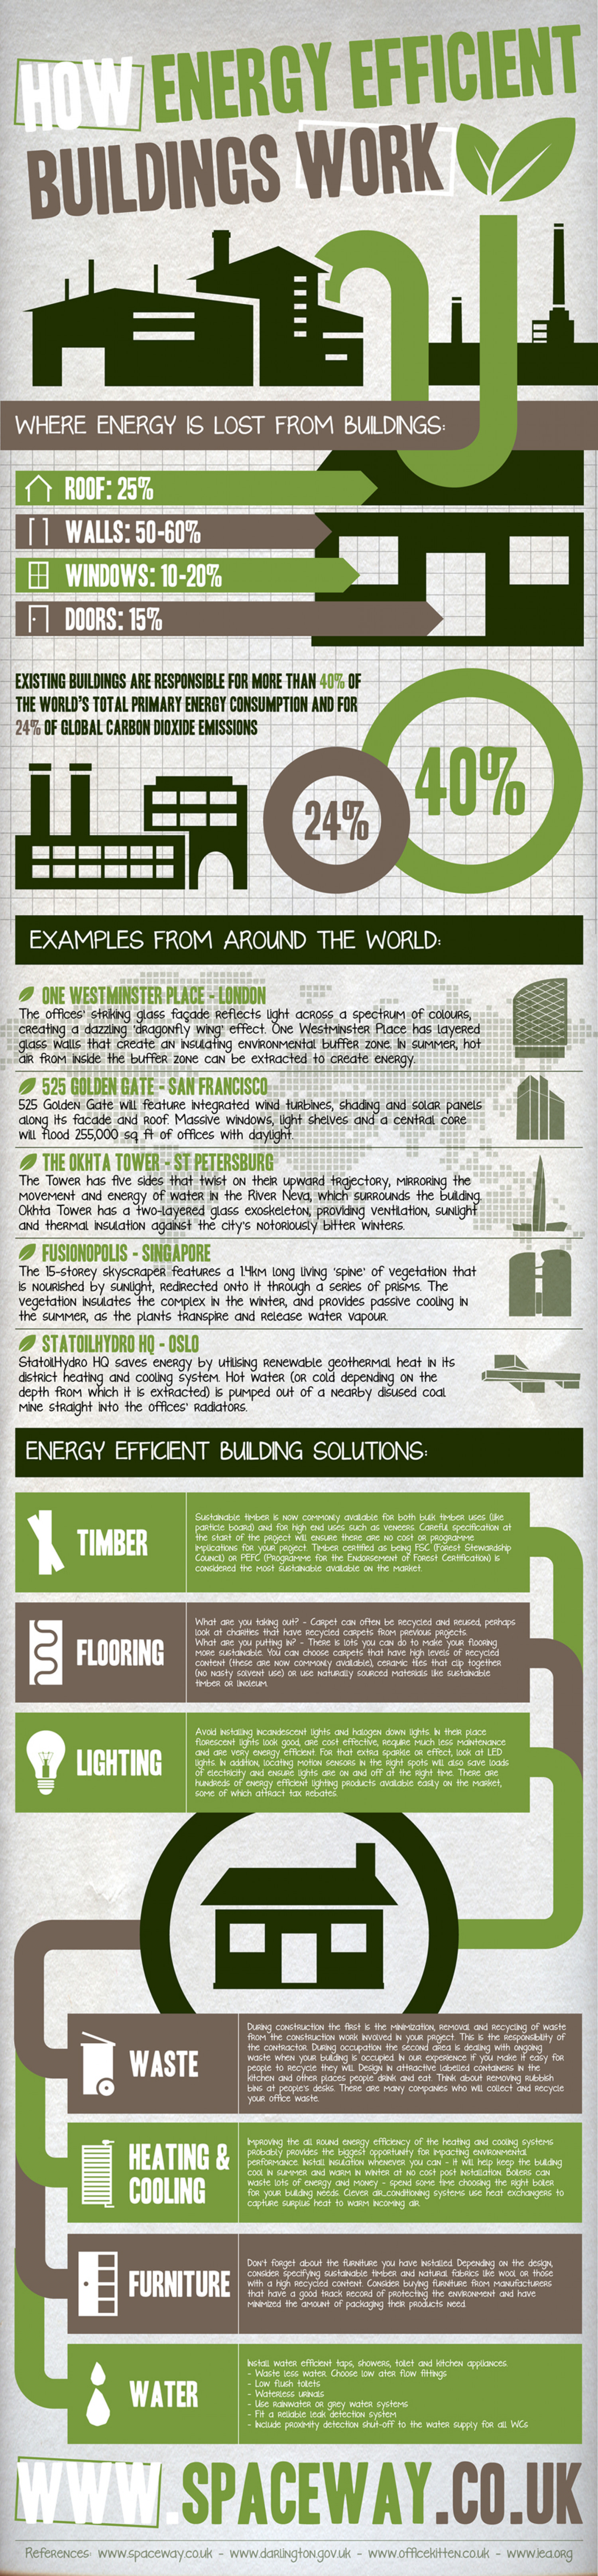 How Energy Efficient Buildings Work Infographic